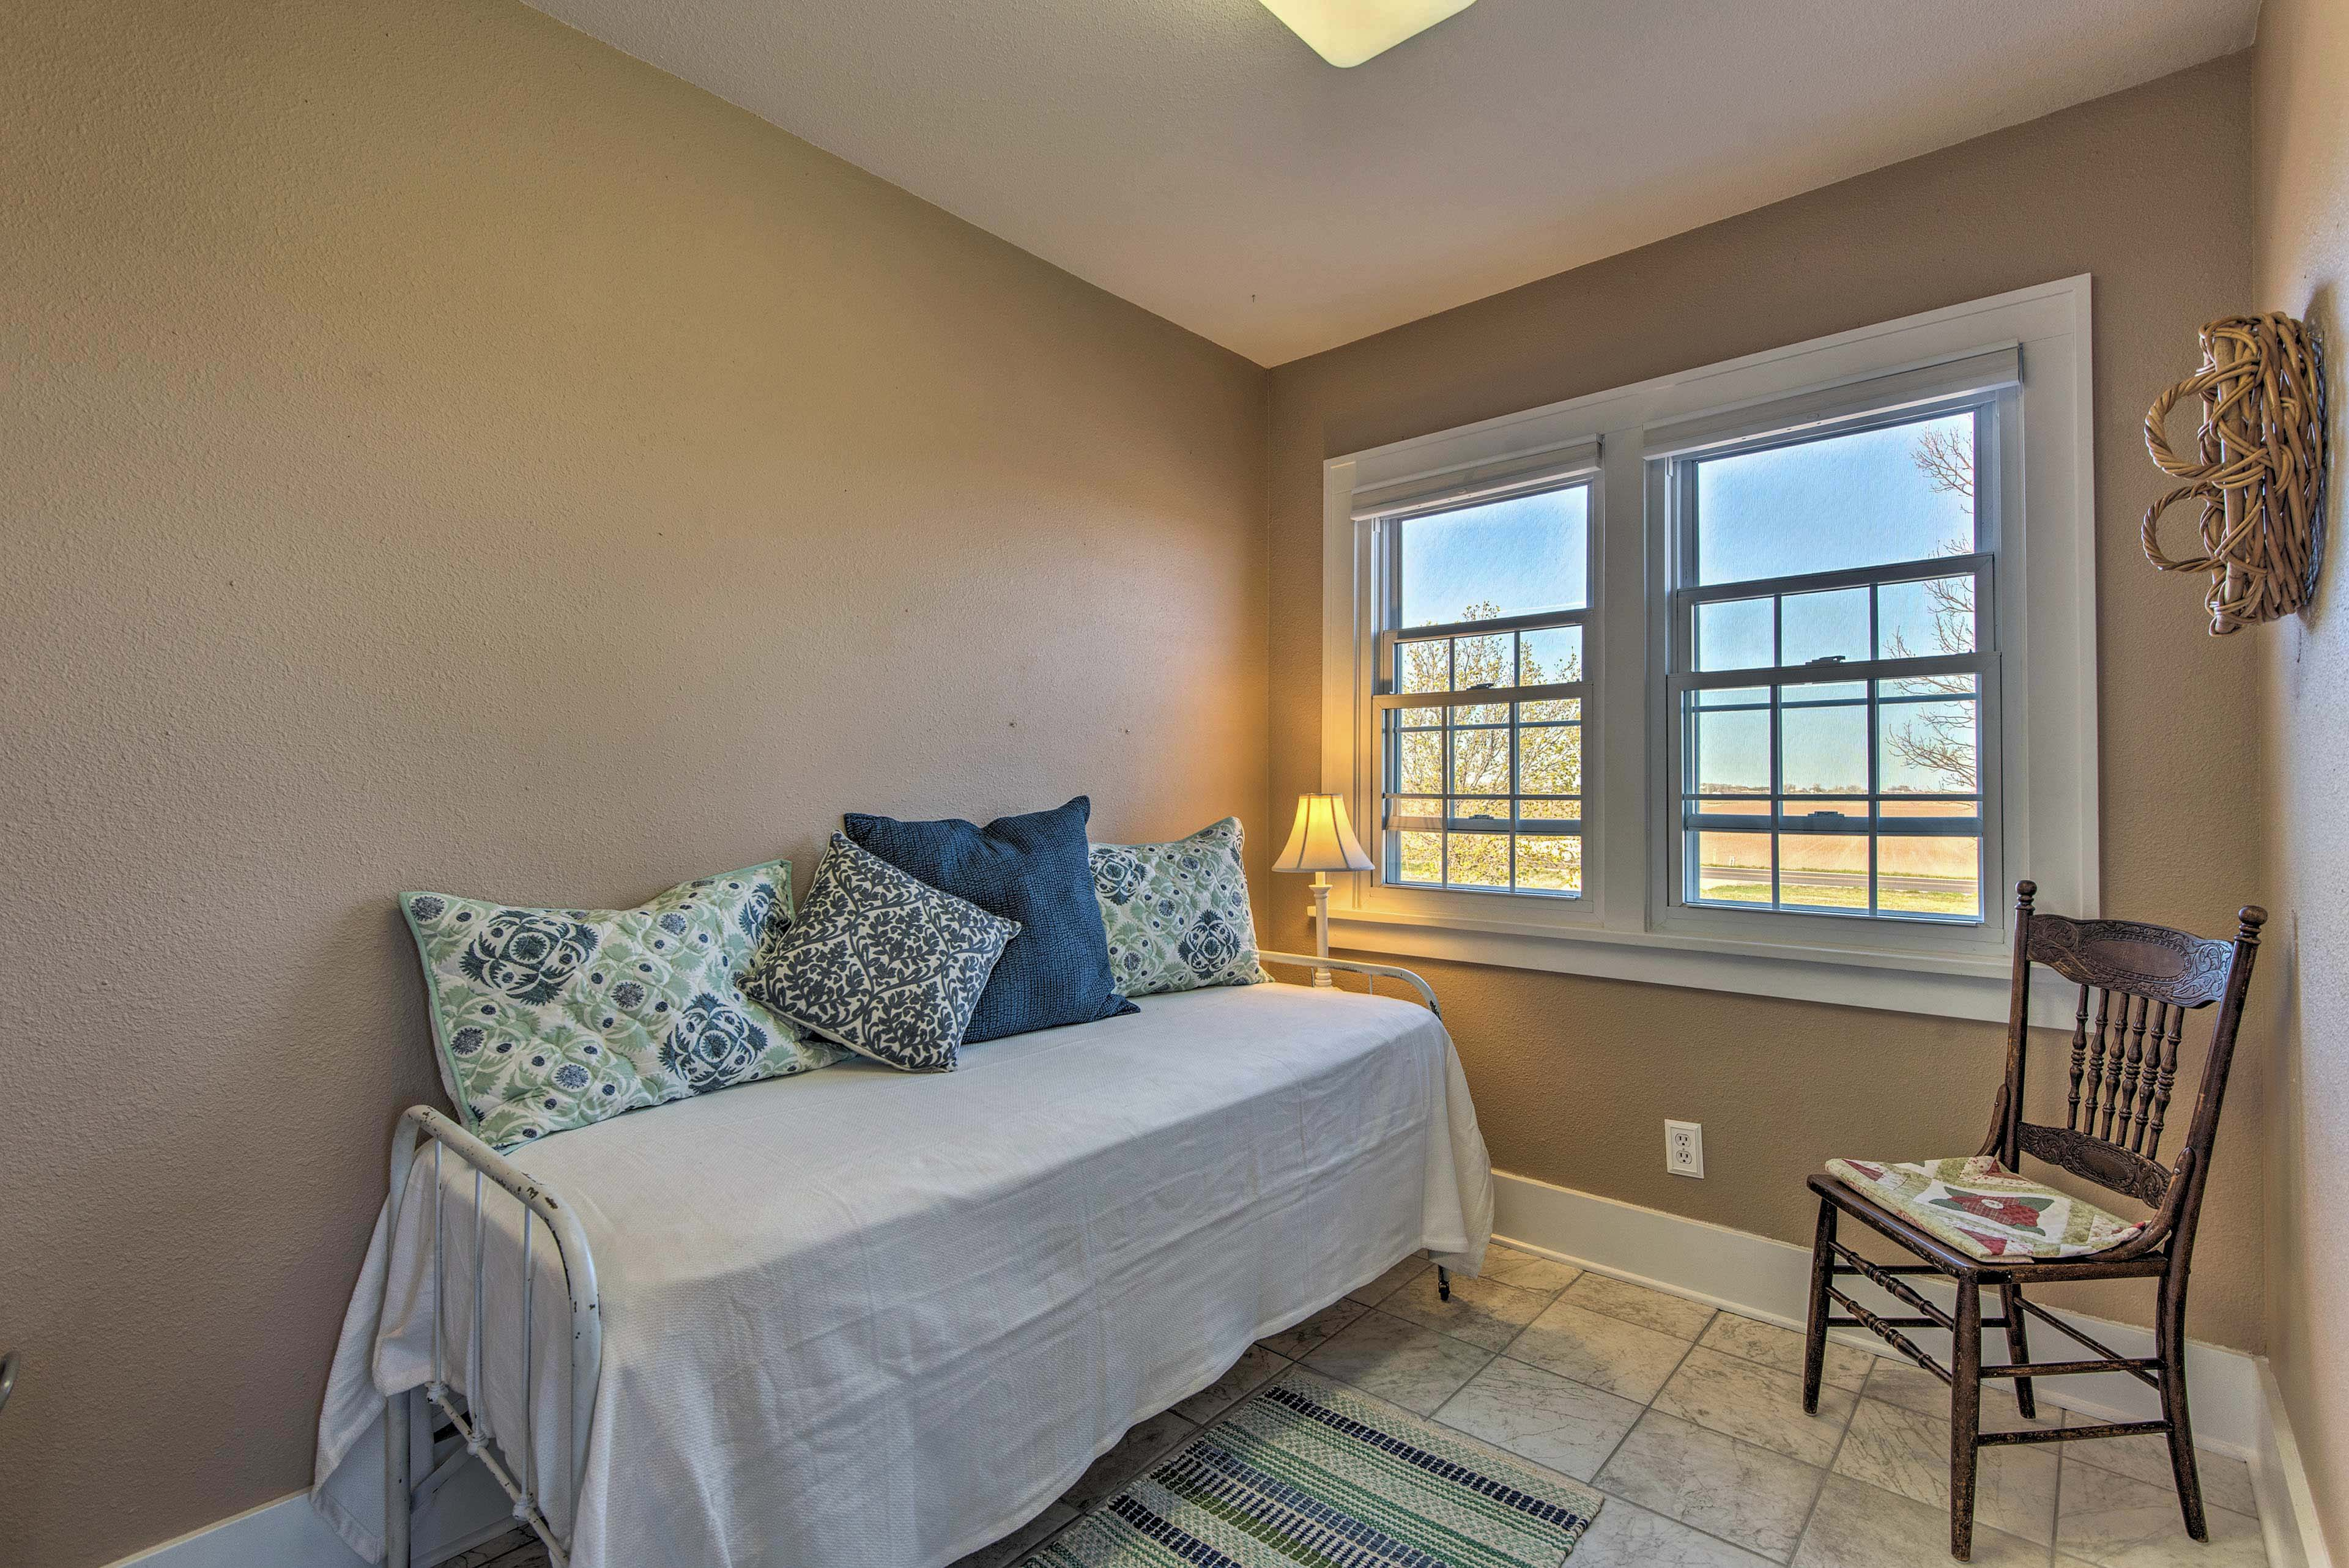 There's a bonus living room with a twin daybed!